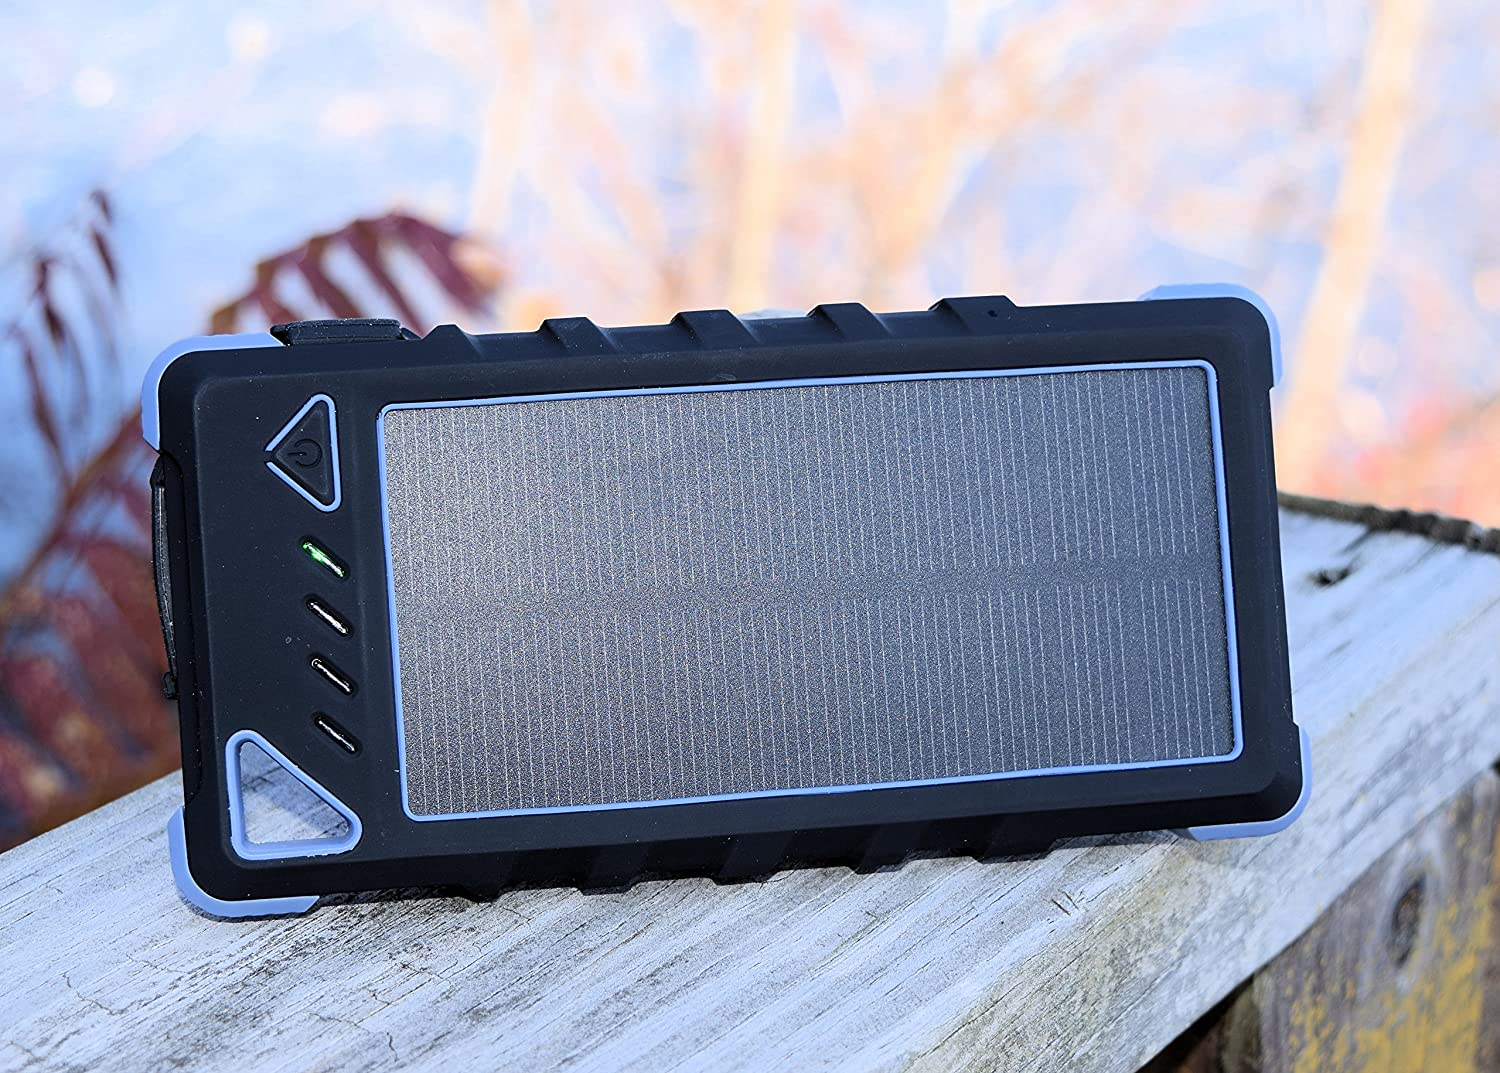 Summit stormforce low voltage solar phone tablet charger power station 098//168